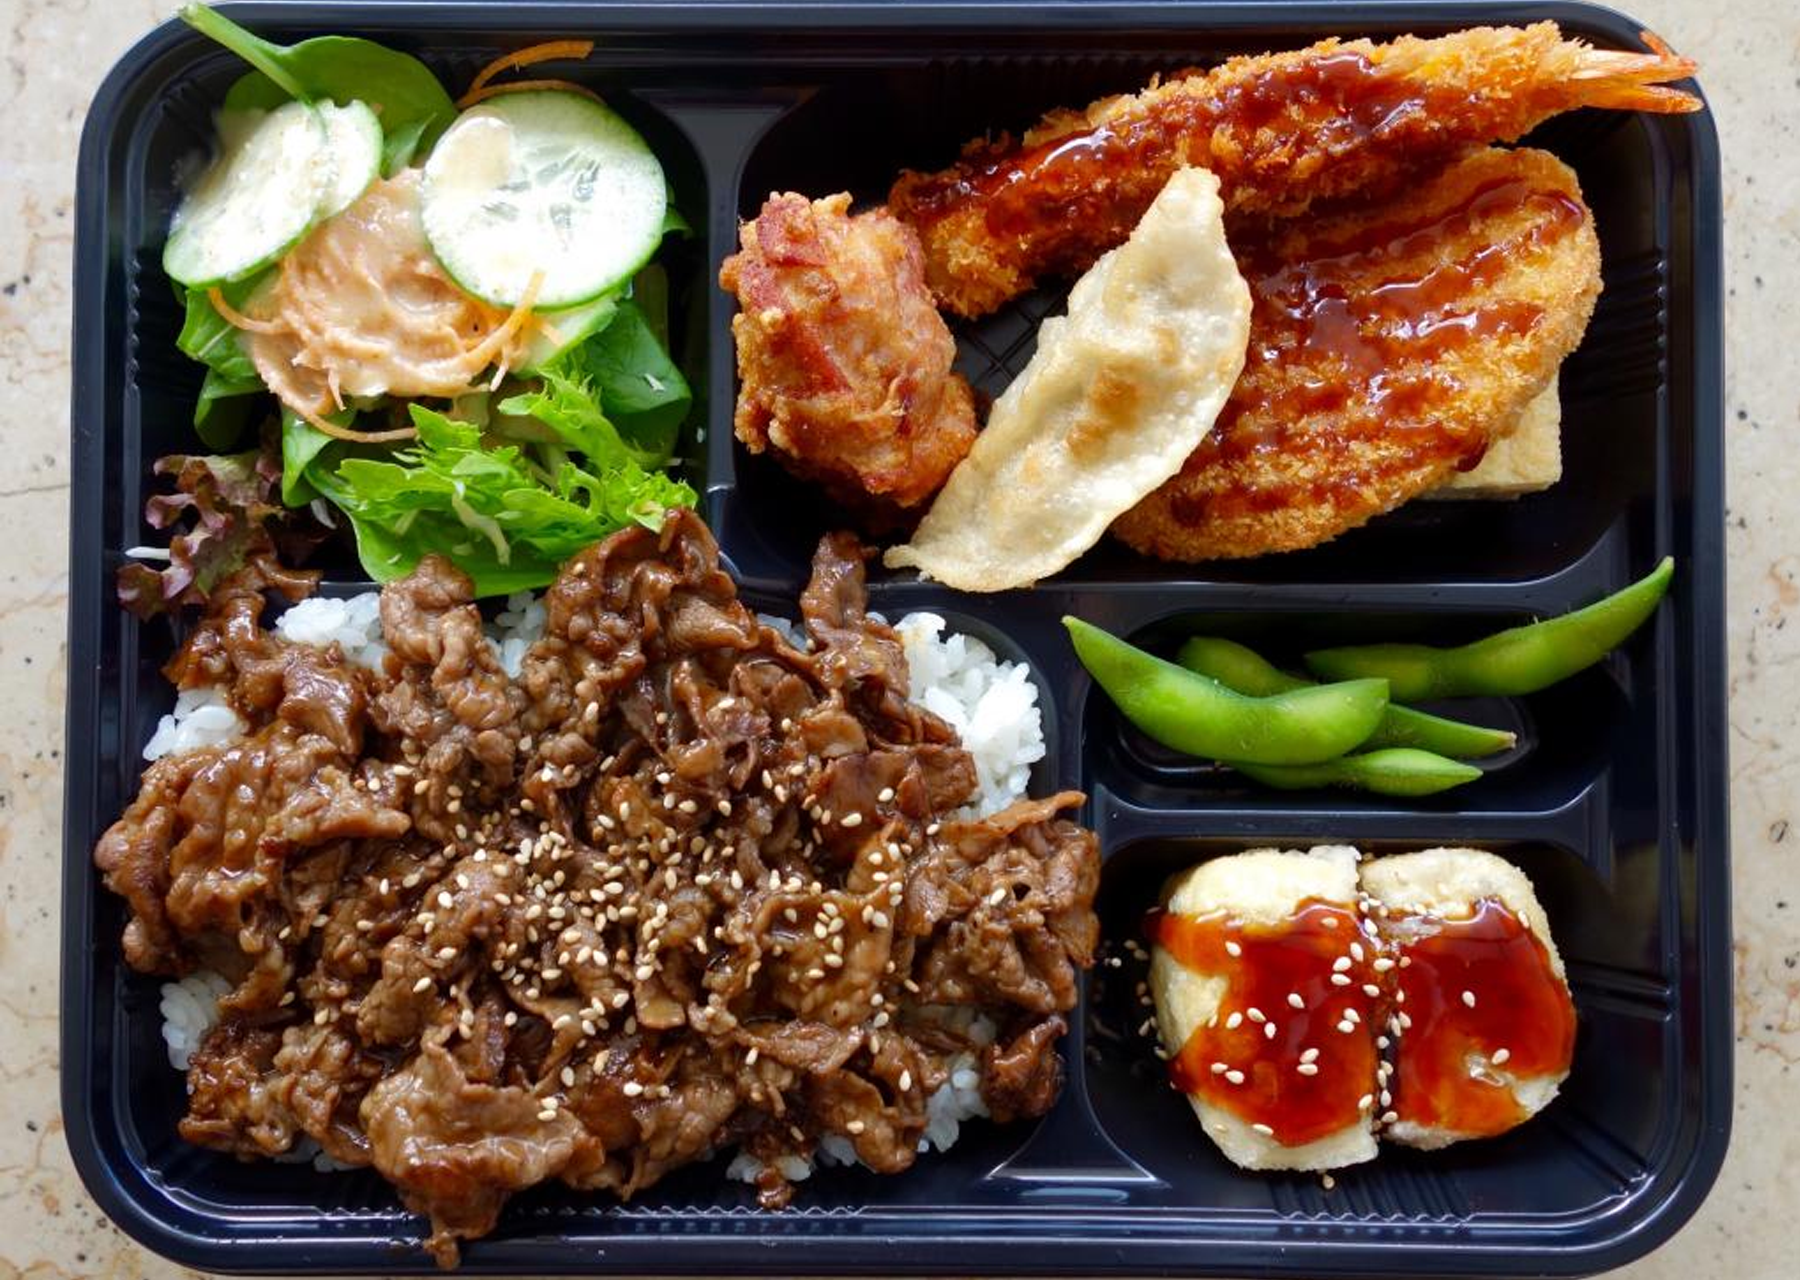 Halal Cater Spot Bento Box Bento Lunch Bento Box Lunch For Adults Bento